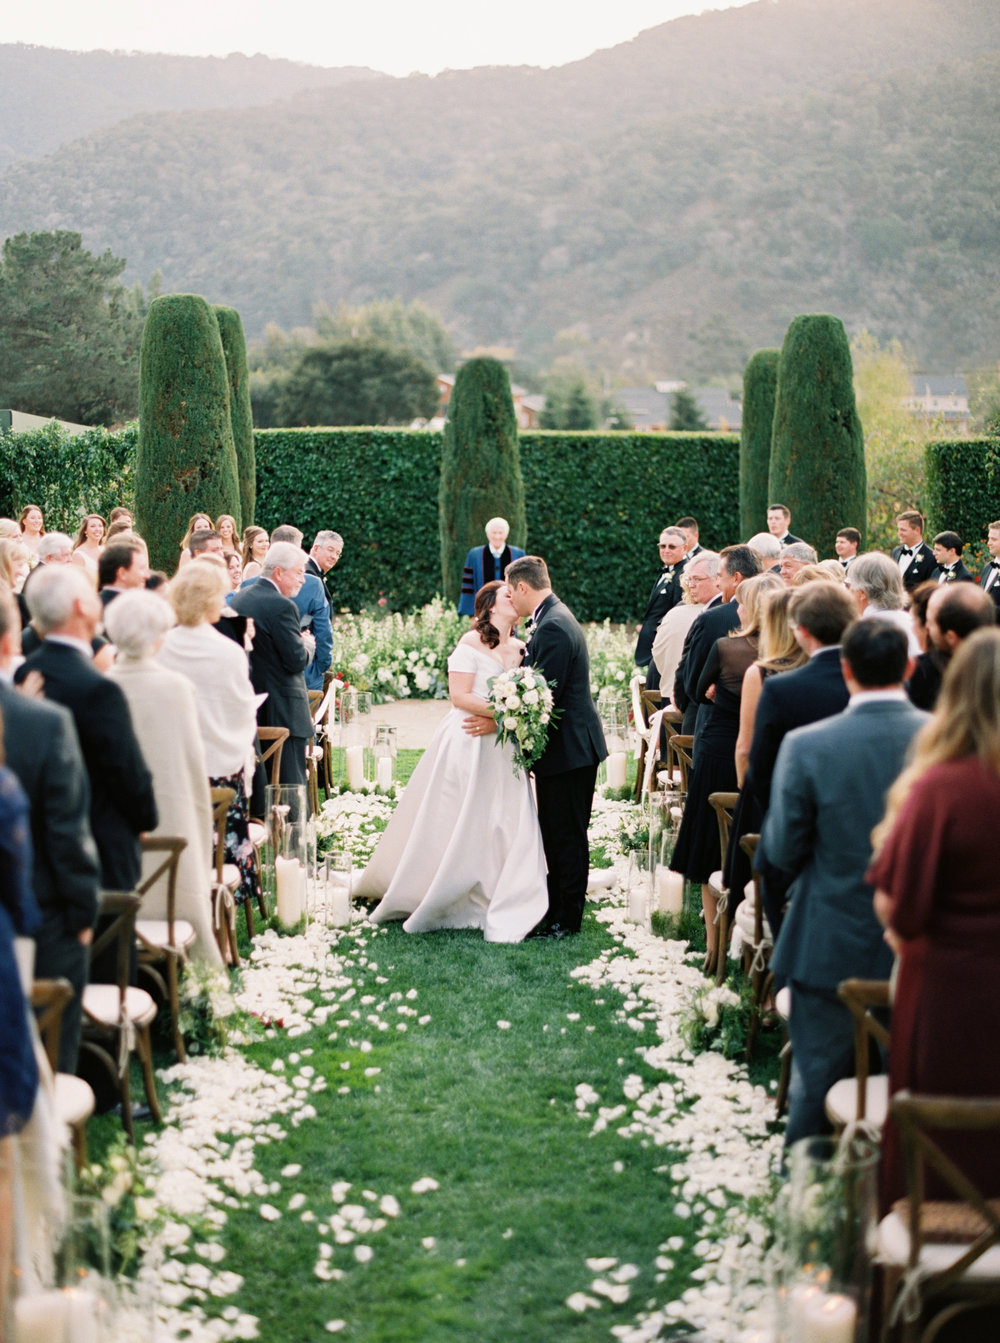 Mark + Kailey | Carmel Valley, California